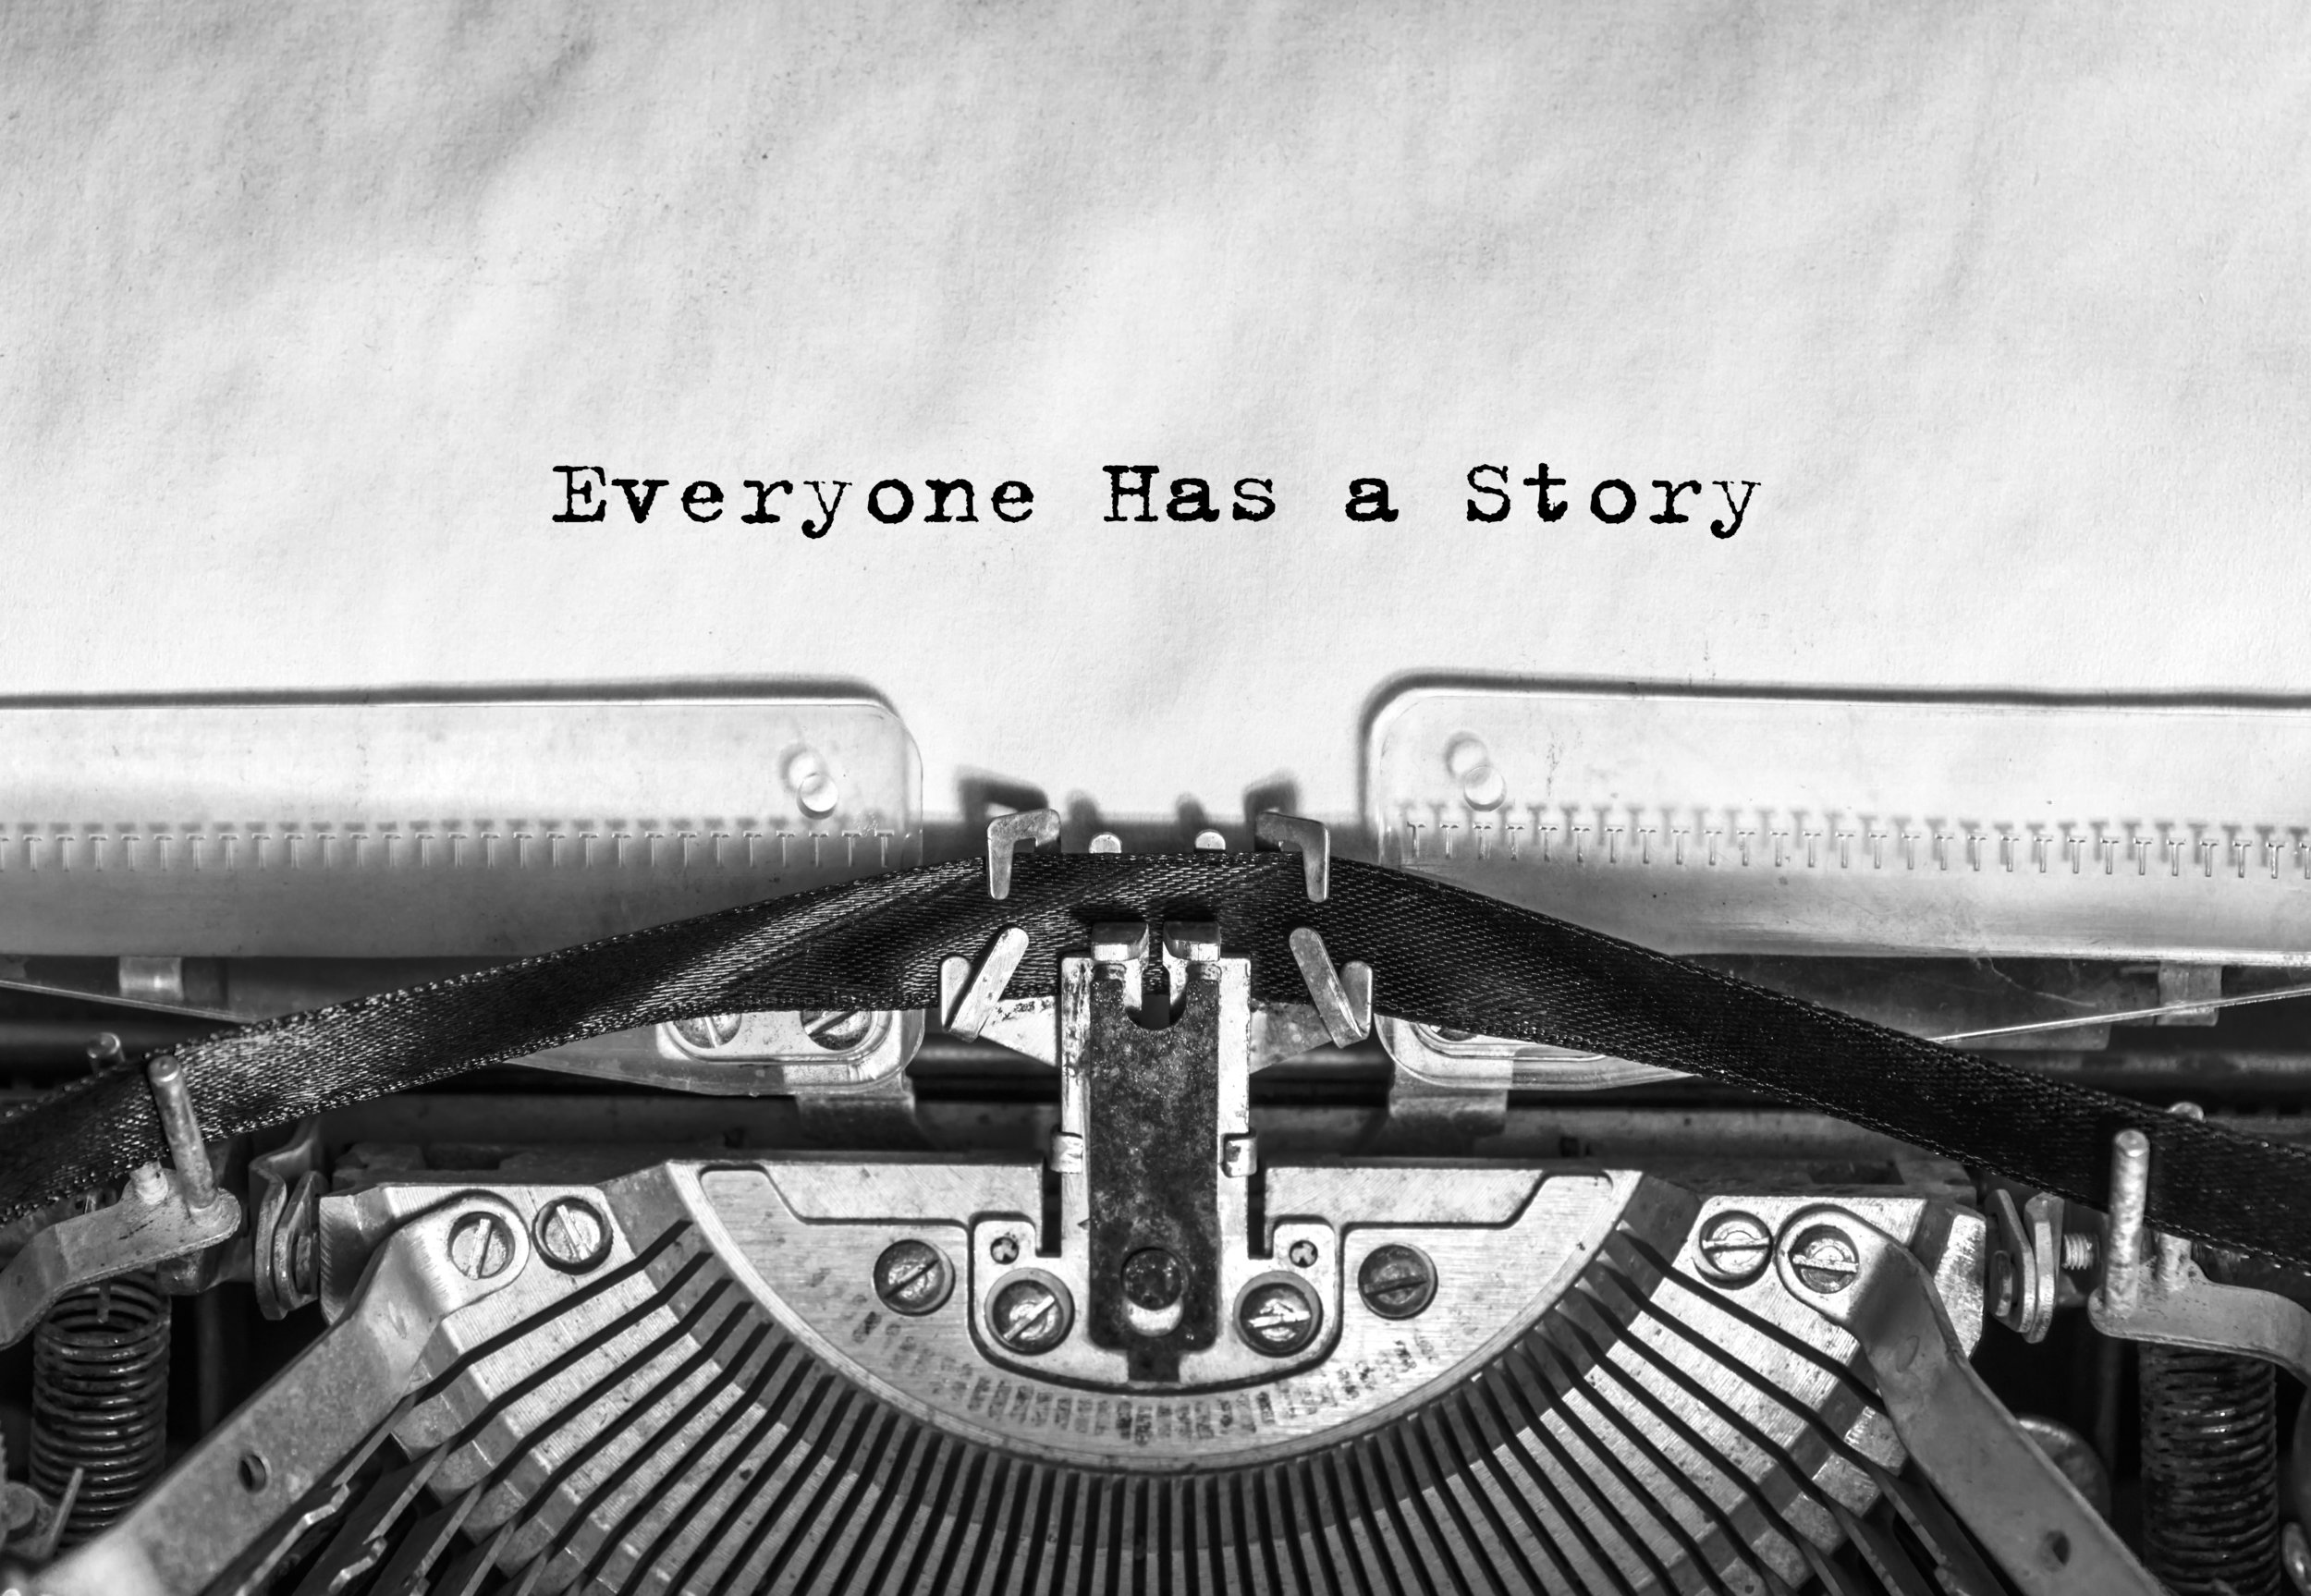 everyone has a story image.jpeg